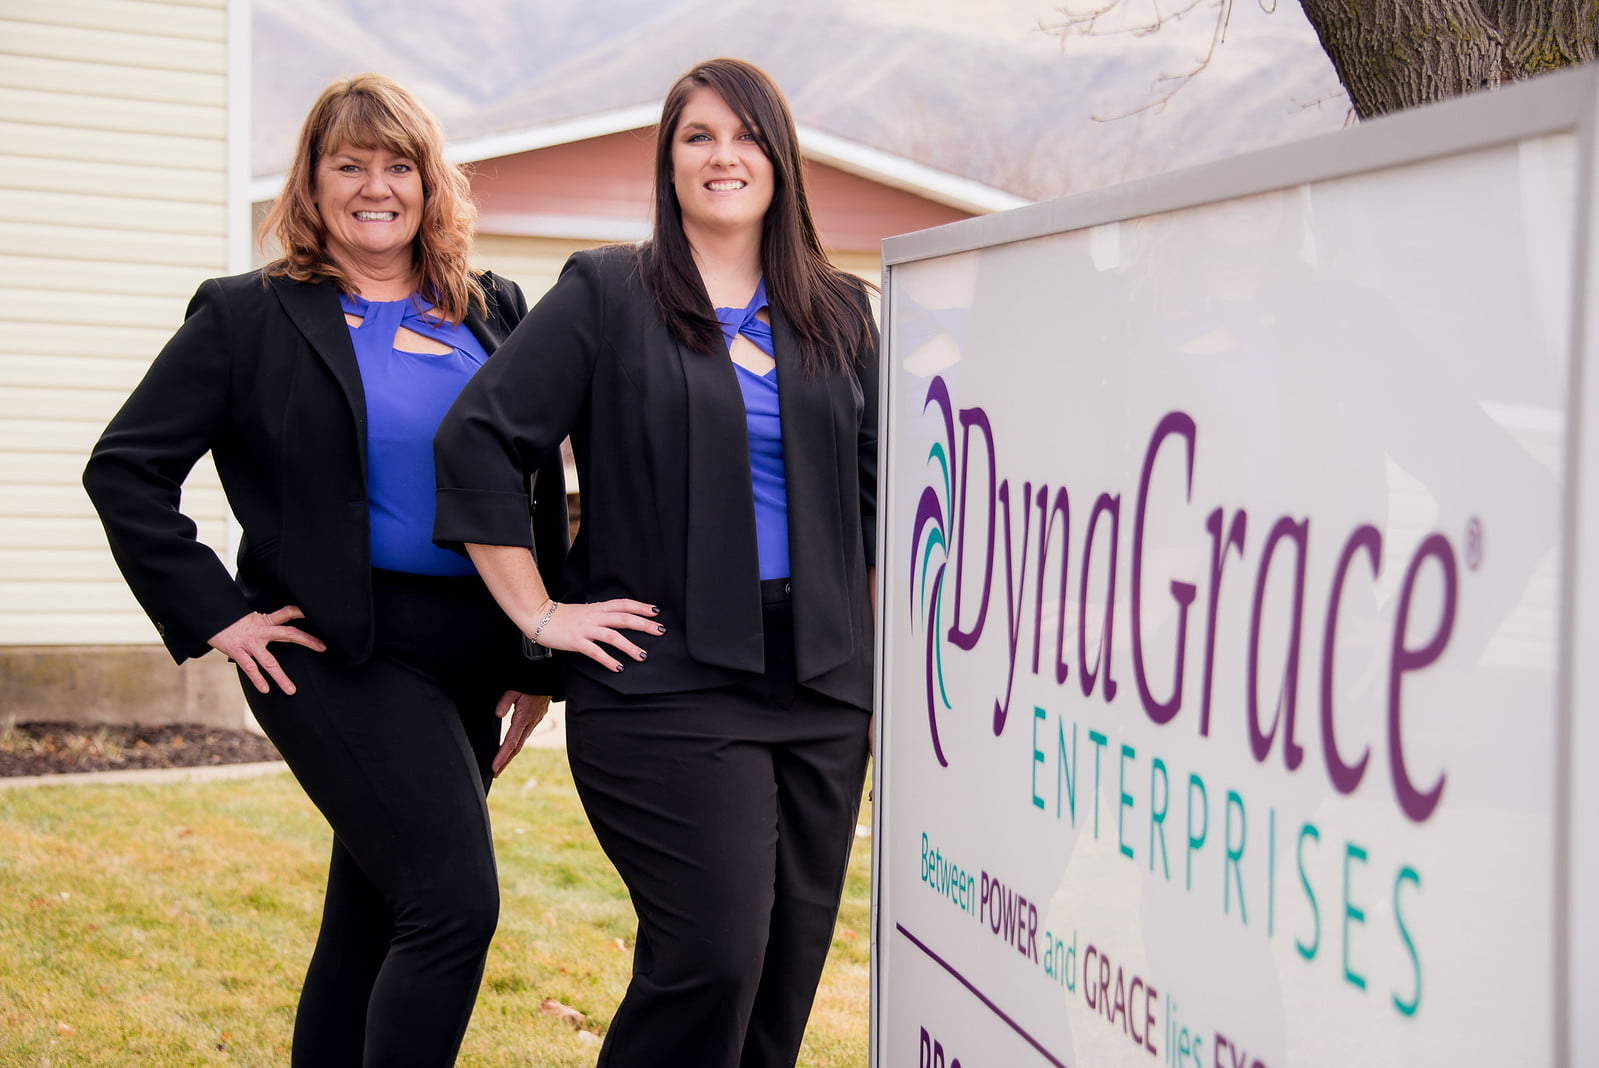 DynaGrace Enterprises Moves to New Location in Morgan, Utah